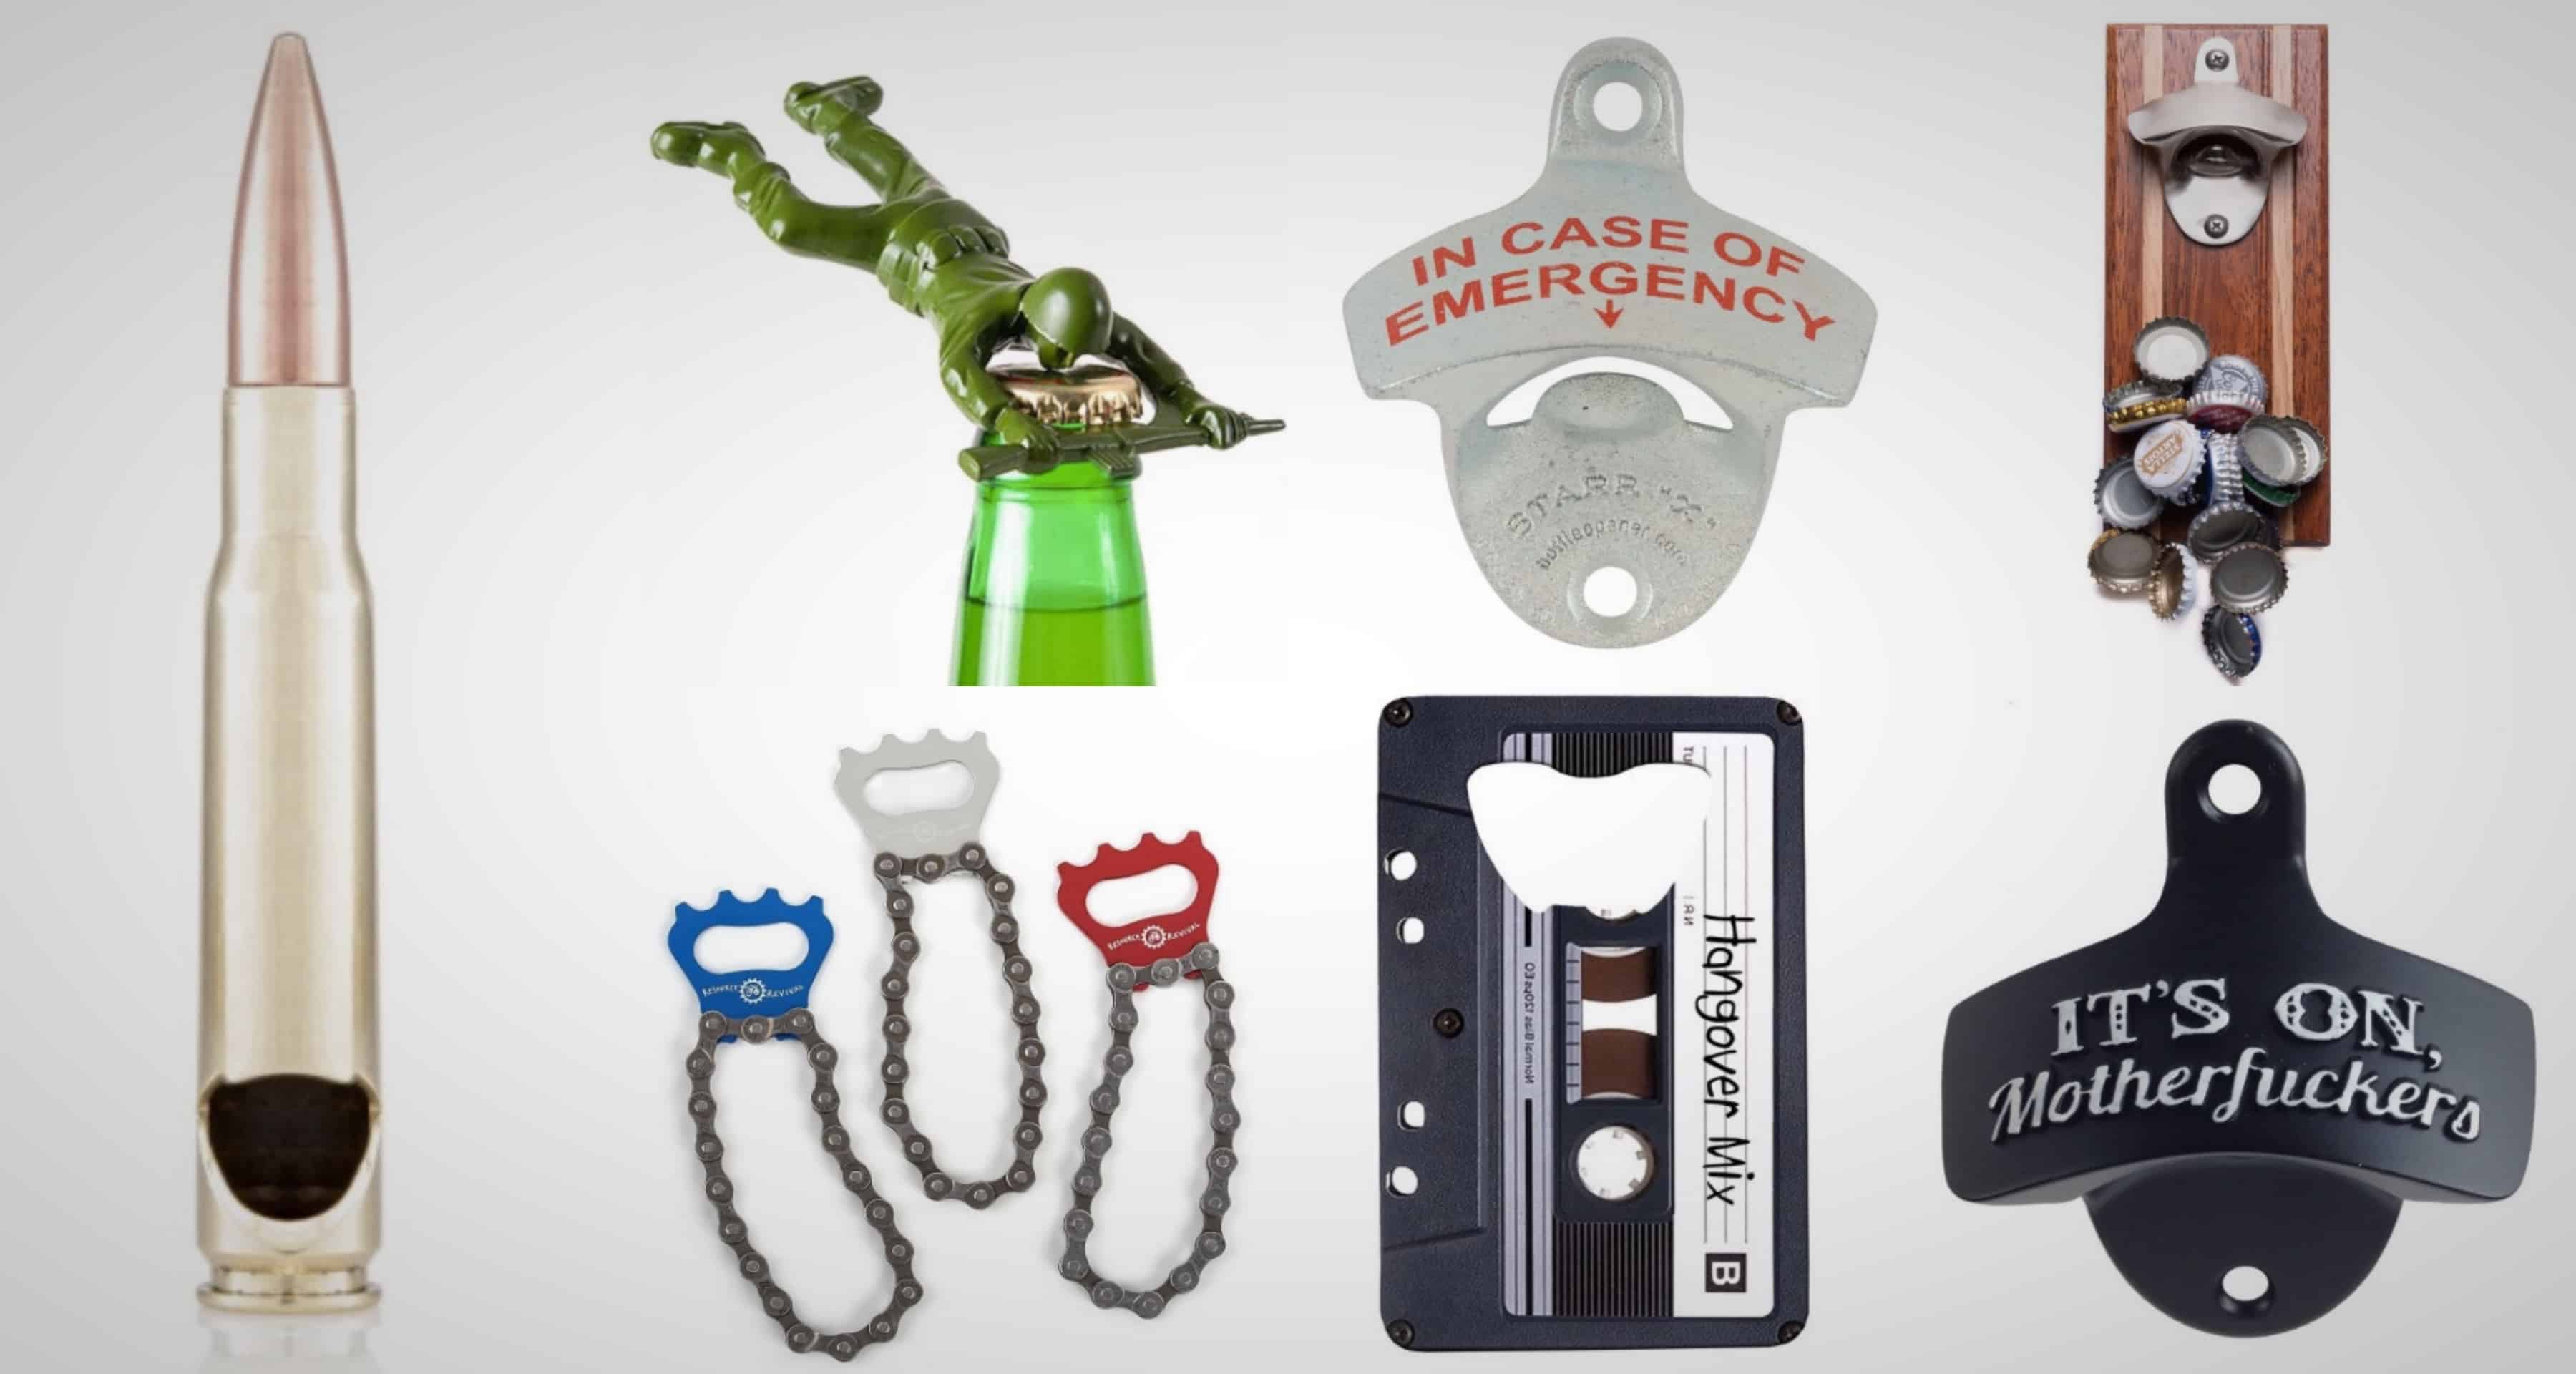 30 Coolest Bottle Openers For Every Home Bar The Daily Want